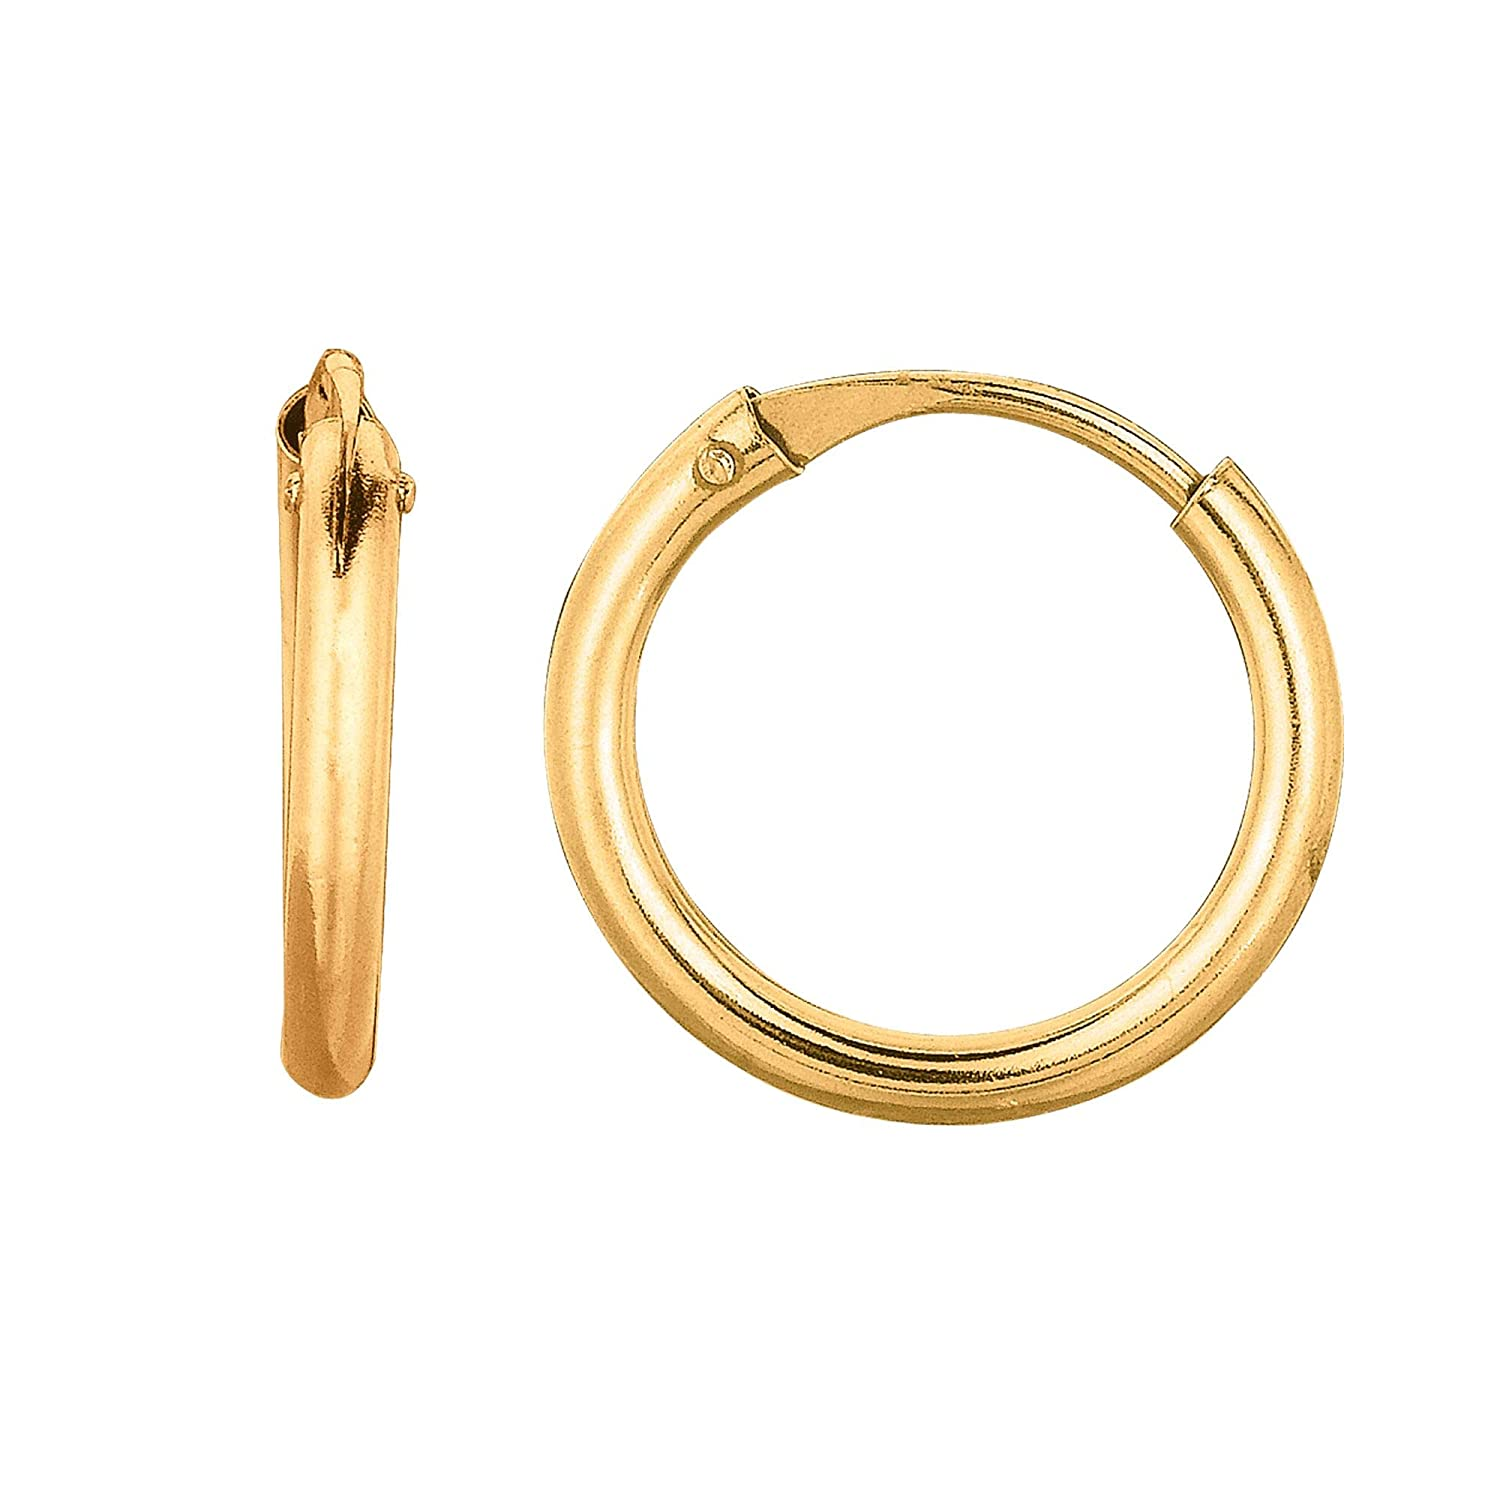 10K Yellow Gold 1X10mm Shiny Small Endless Round Hoop Earrings with Hinged by IcedTime